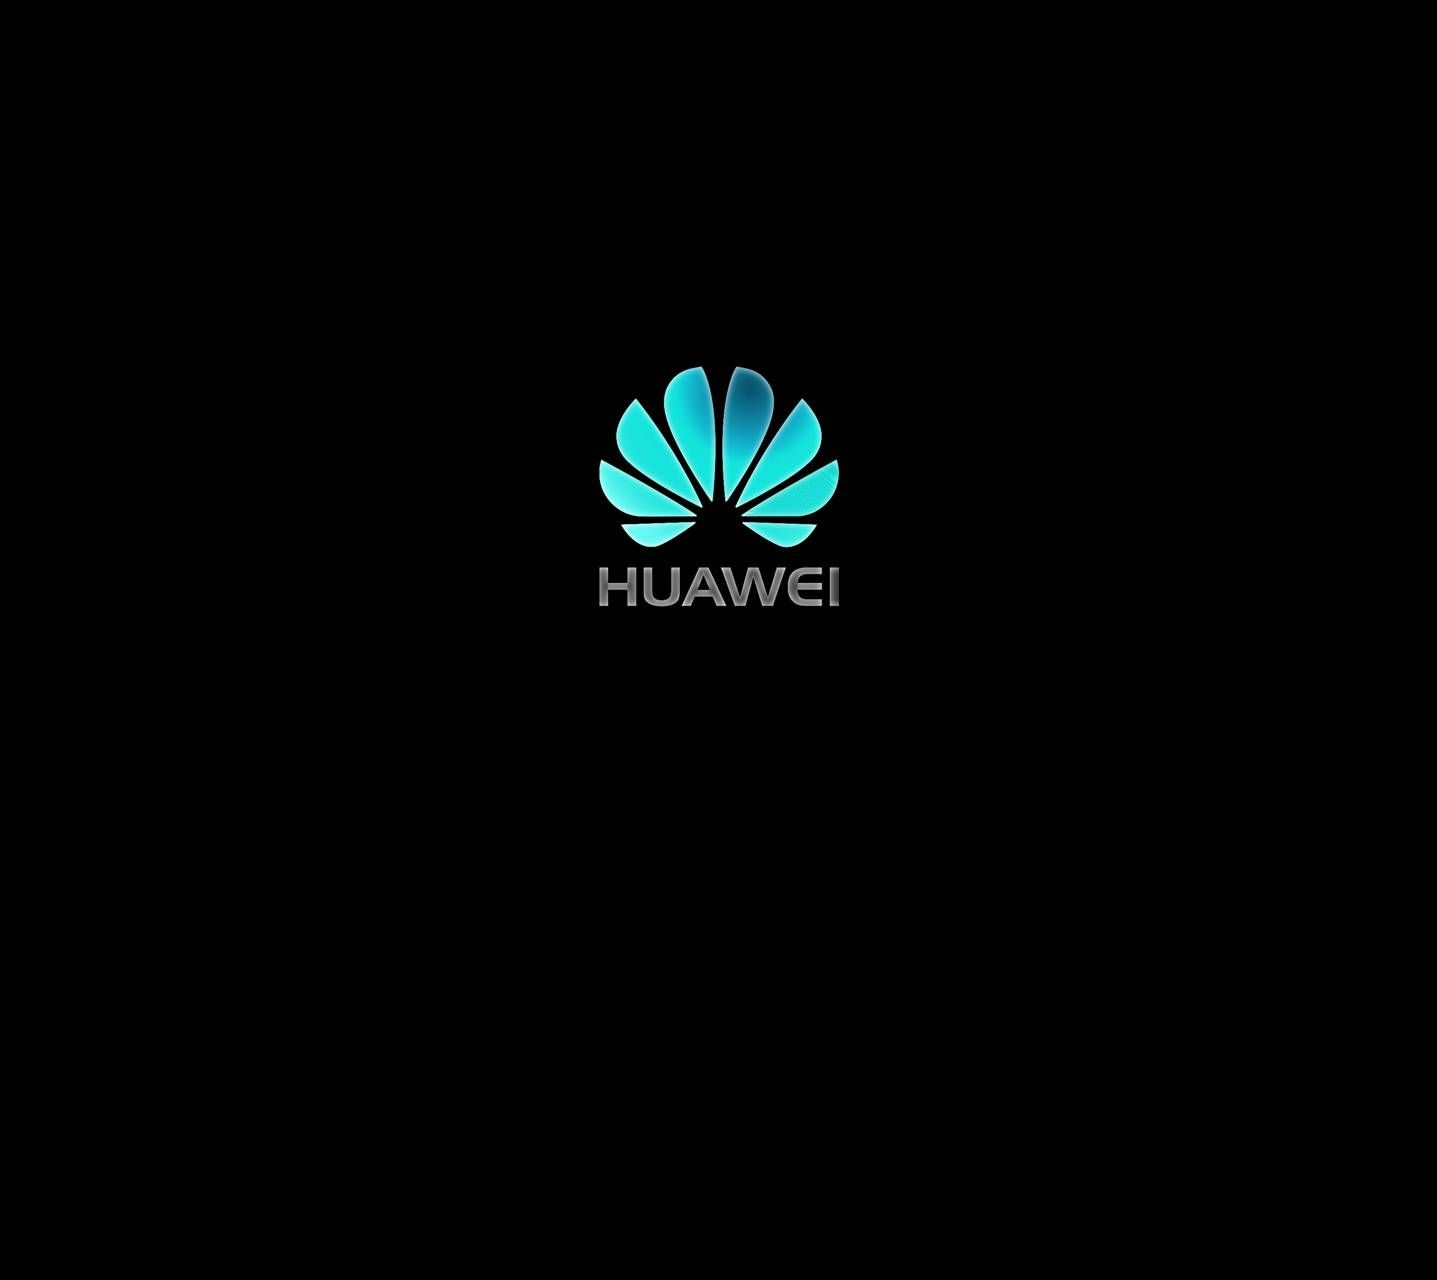 Image Result For Huawei Logo Flower Iphone Wallpaper Phone Wallpaper Design Huawei Wallpapers